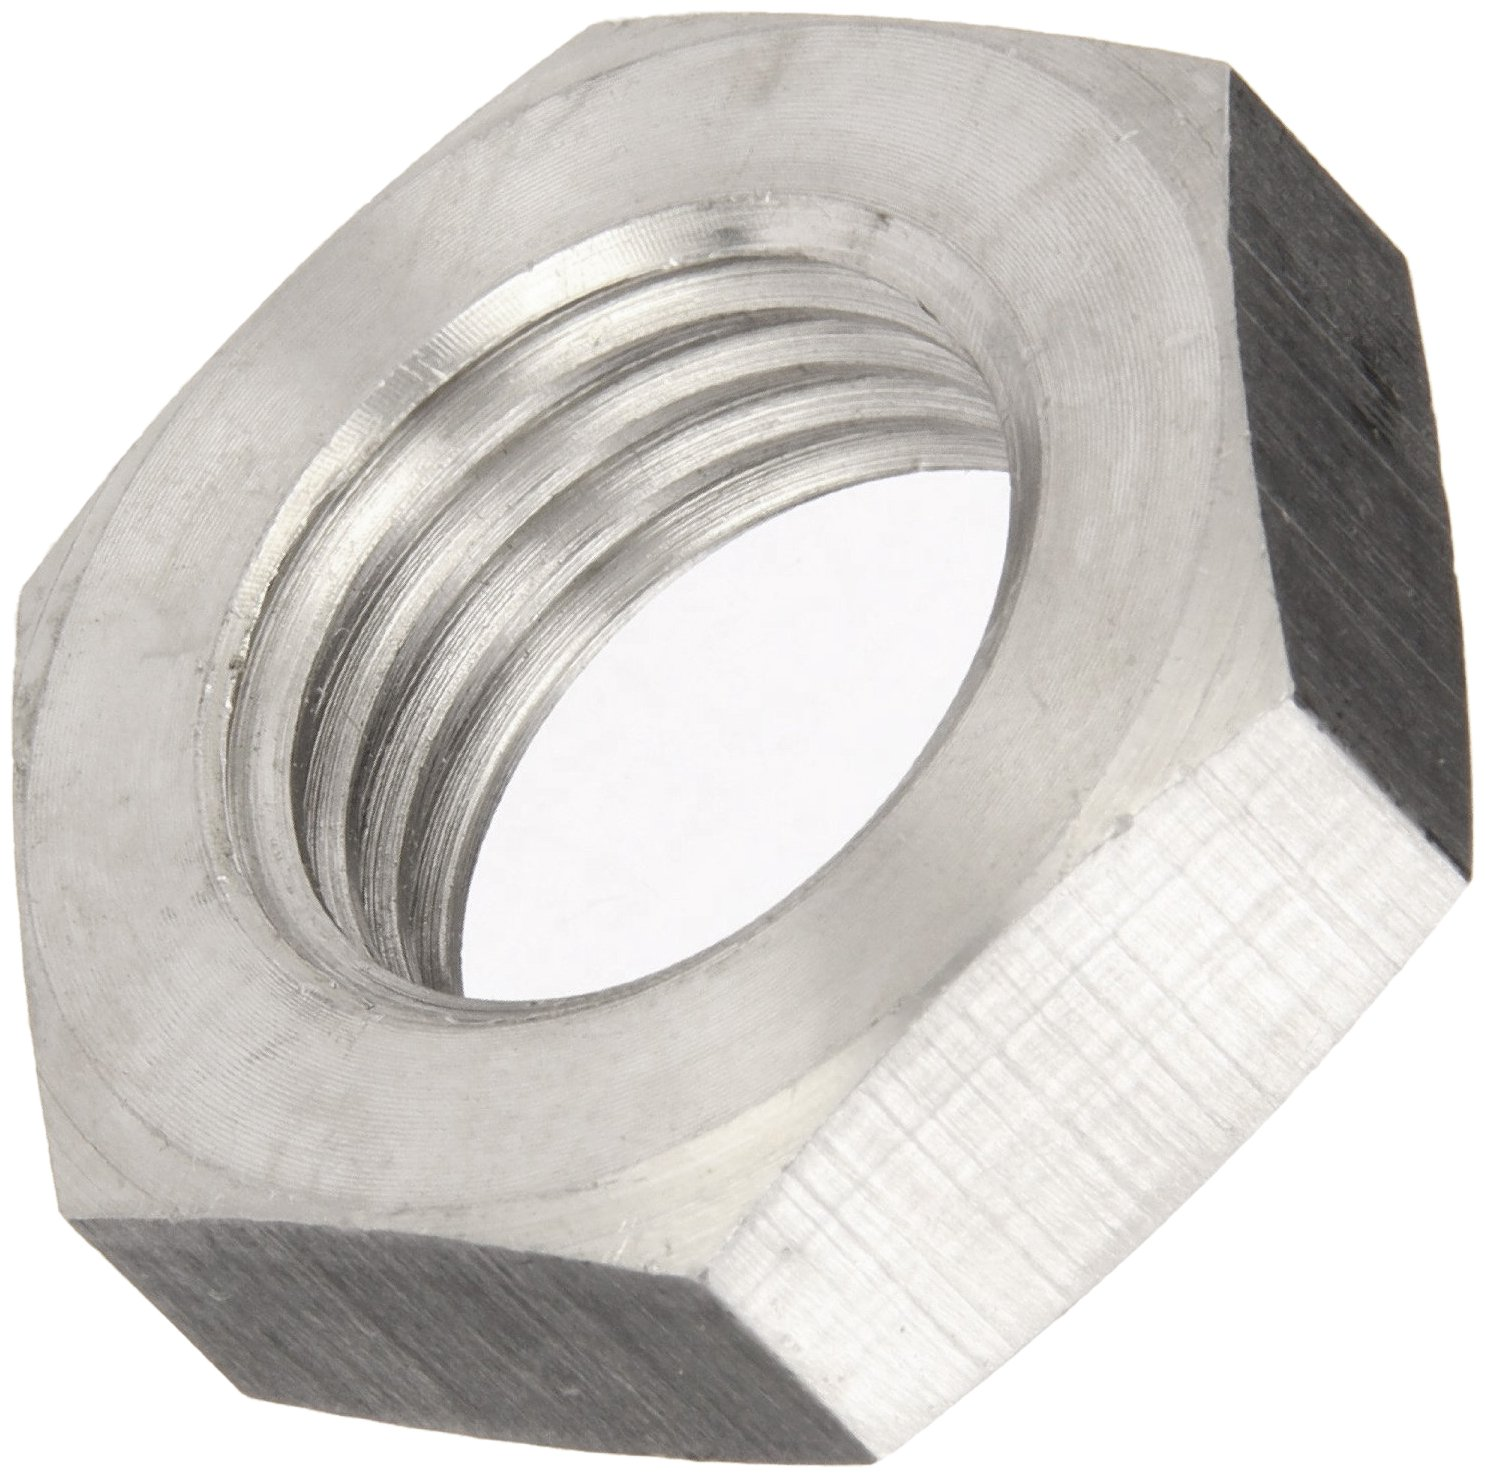 Class 8 DIN 934 Metric Pack of 25 Steel Hex Nut 27 mm Width Across Flats 15 mm Thick Plain Finish M18-2.5 Thread Size